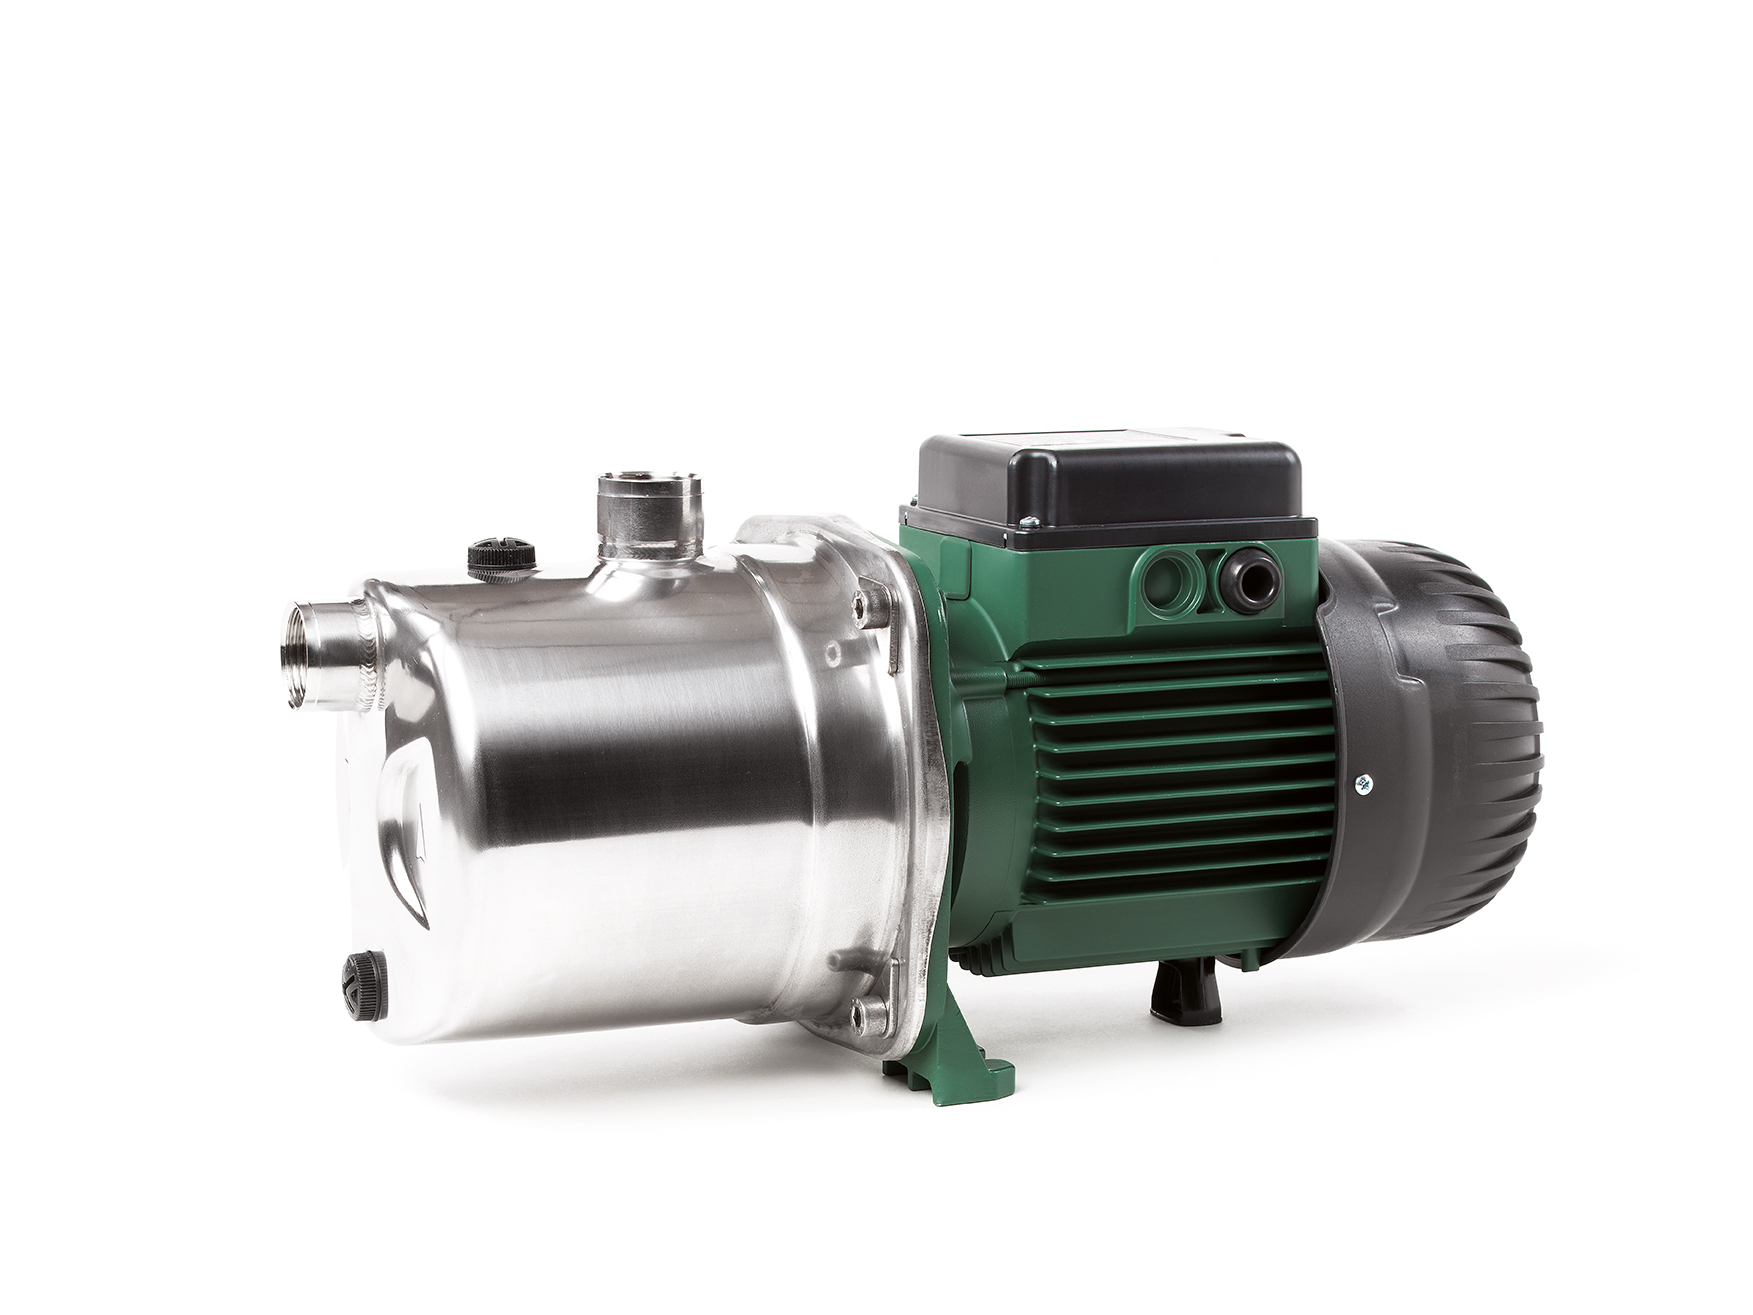 JETINOX 132 M DAB Self-priming Centrifugal Electric-pump Single phase stainless steel 1.36 Hp